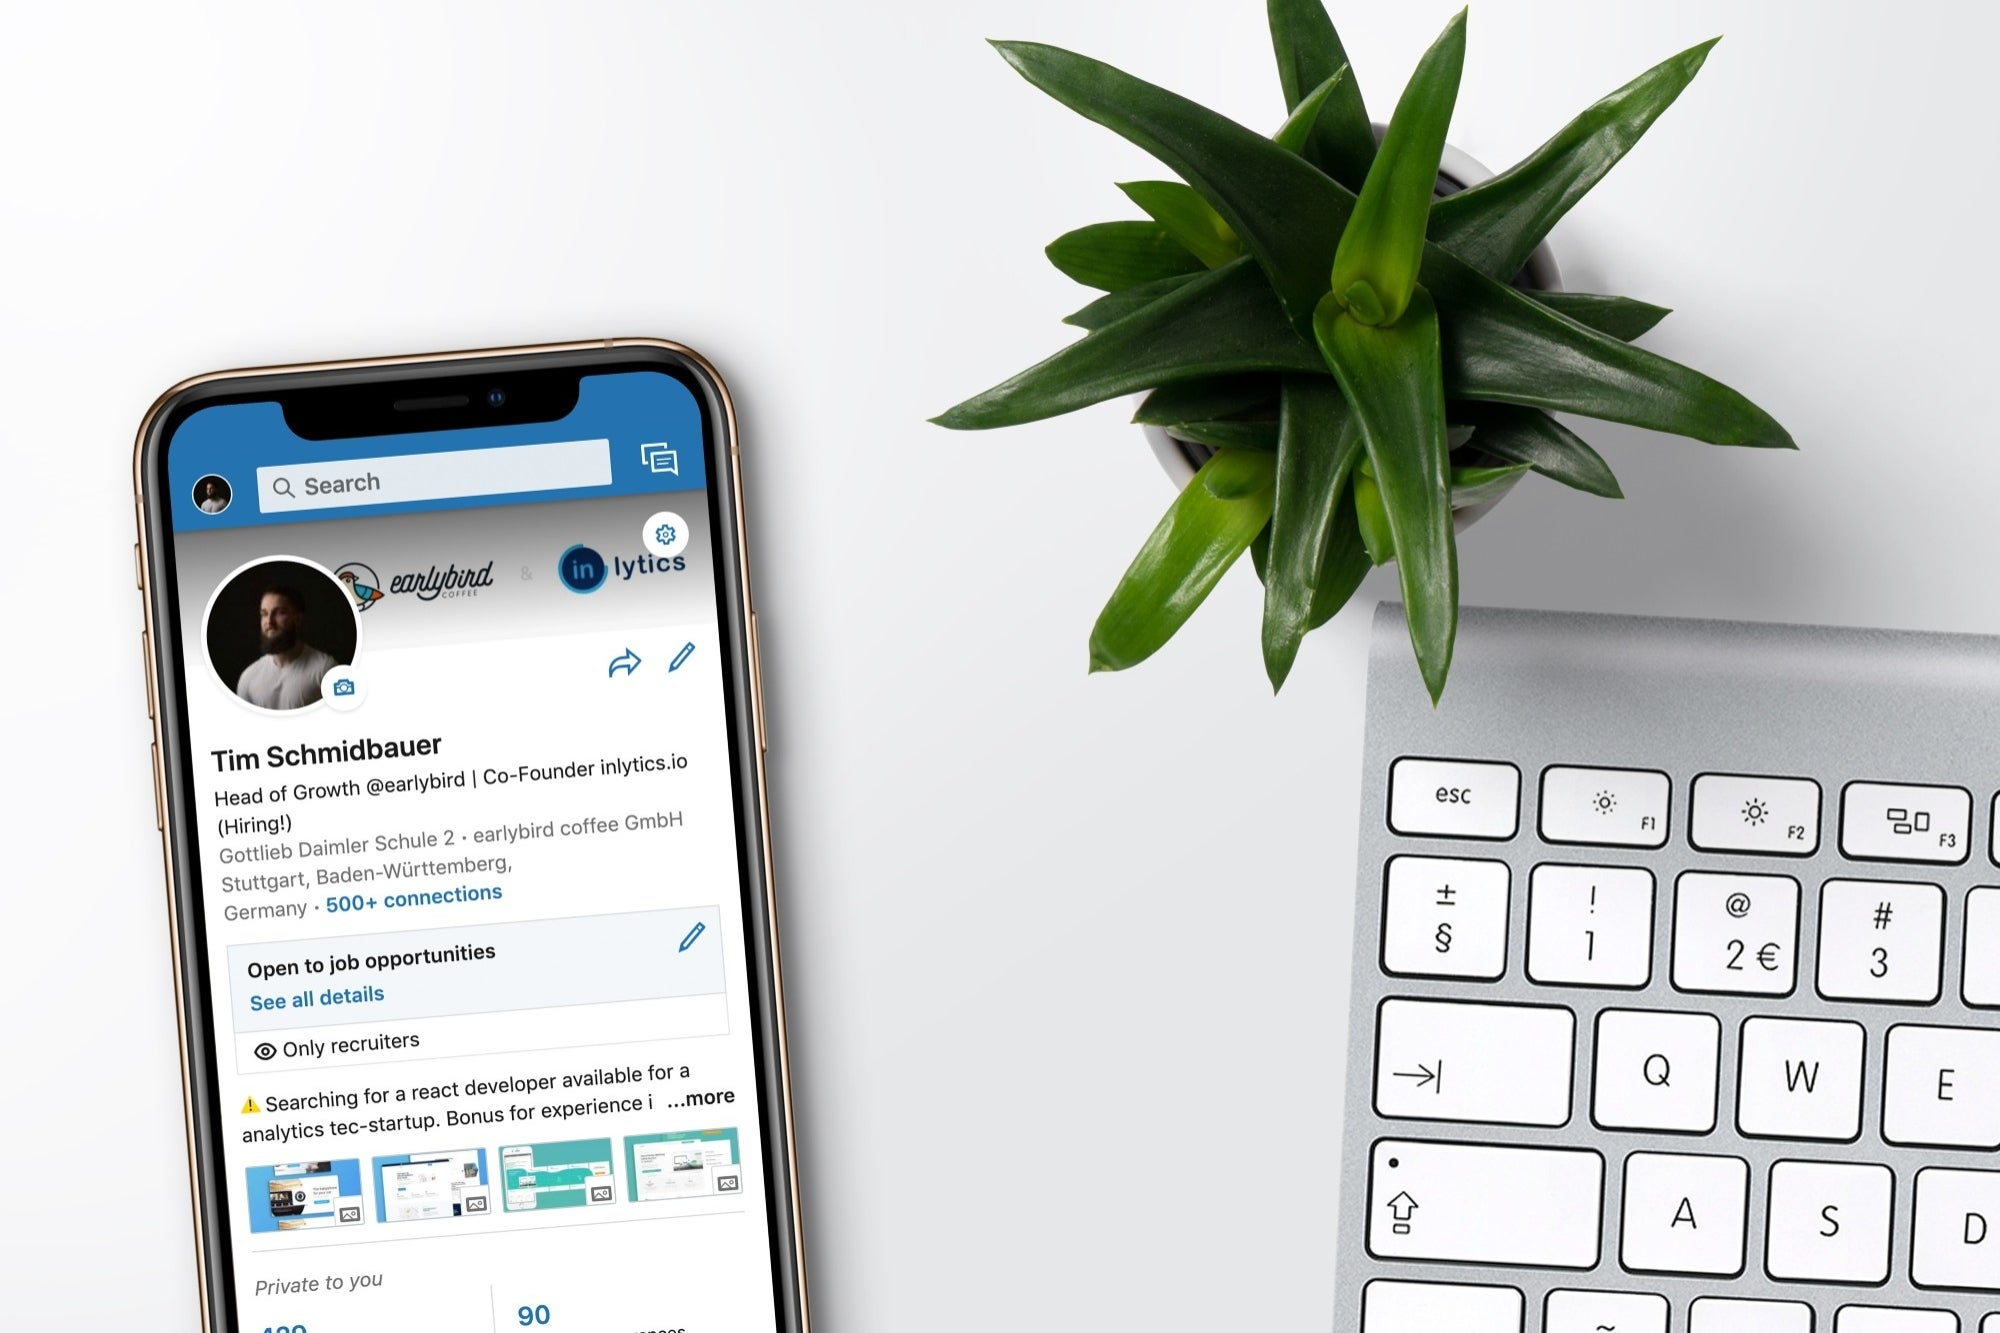 What should you know about LinkedIn if you sell to other companies?